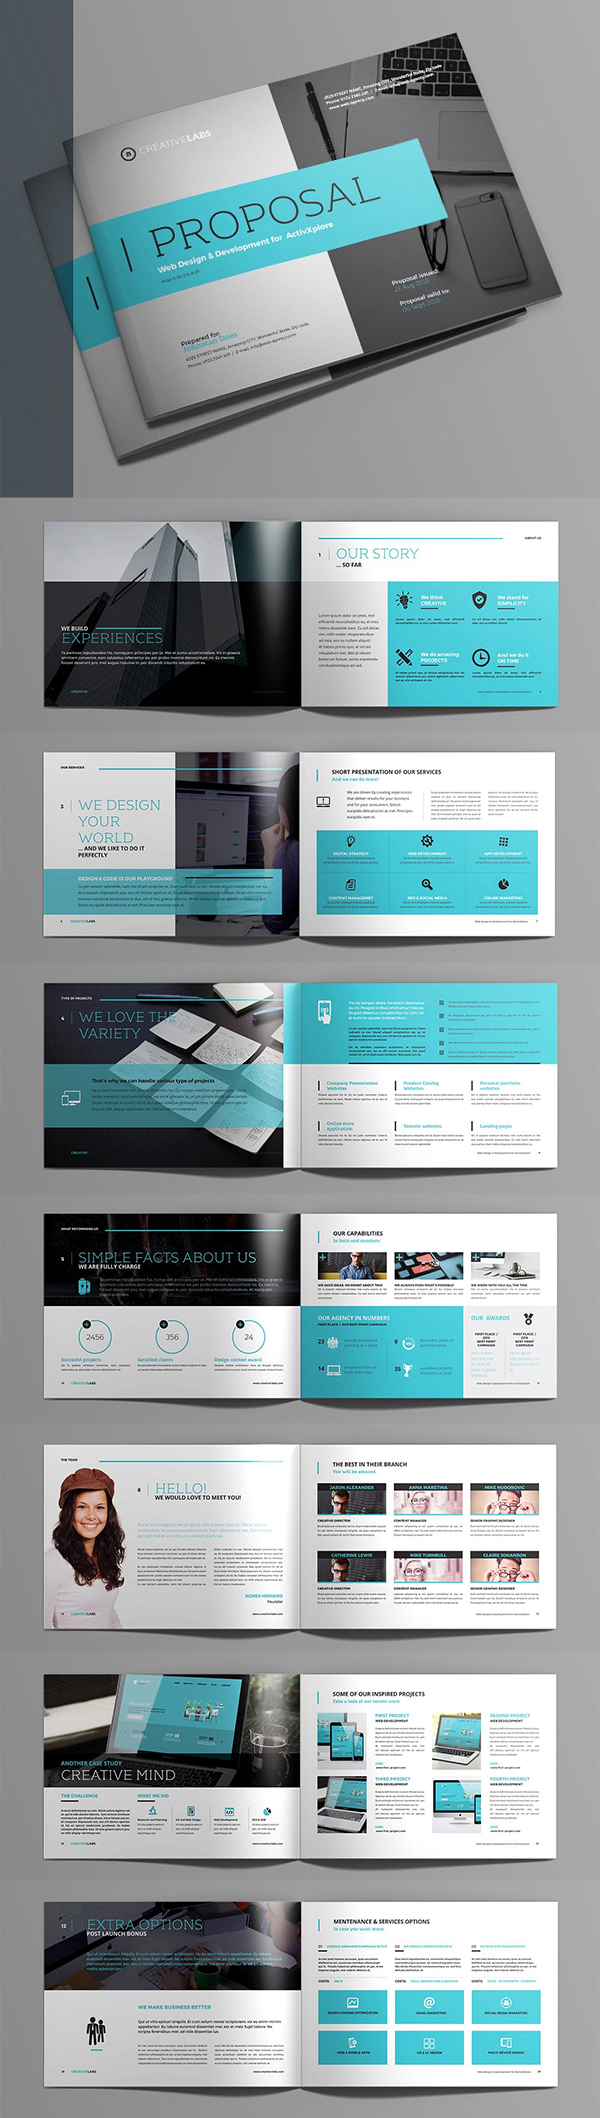 Business proposal templates design graphic design junction professional business proposal templates design 11 cheaphphosting Images